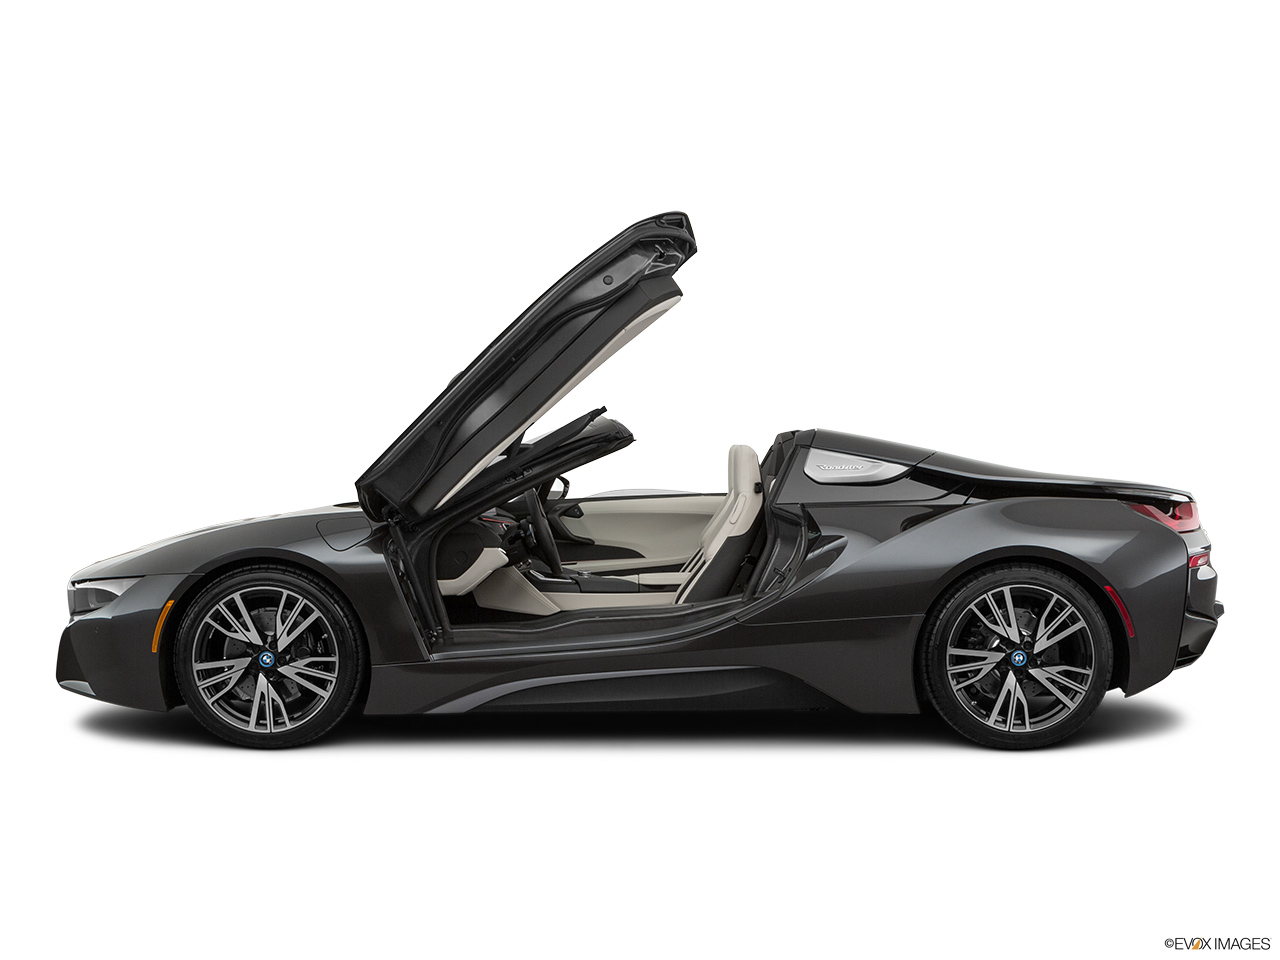 2019 BMW i8 Roadster Standard World Driver's side profile with drivers side door open.